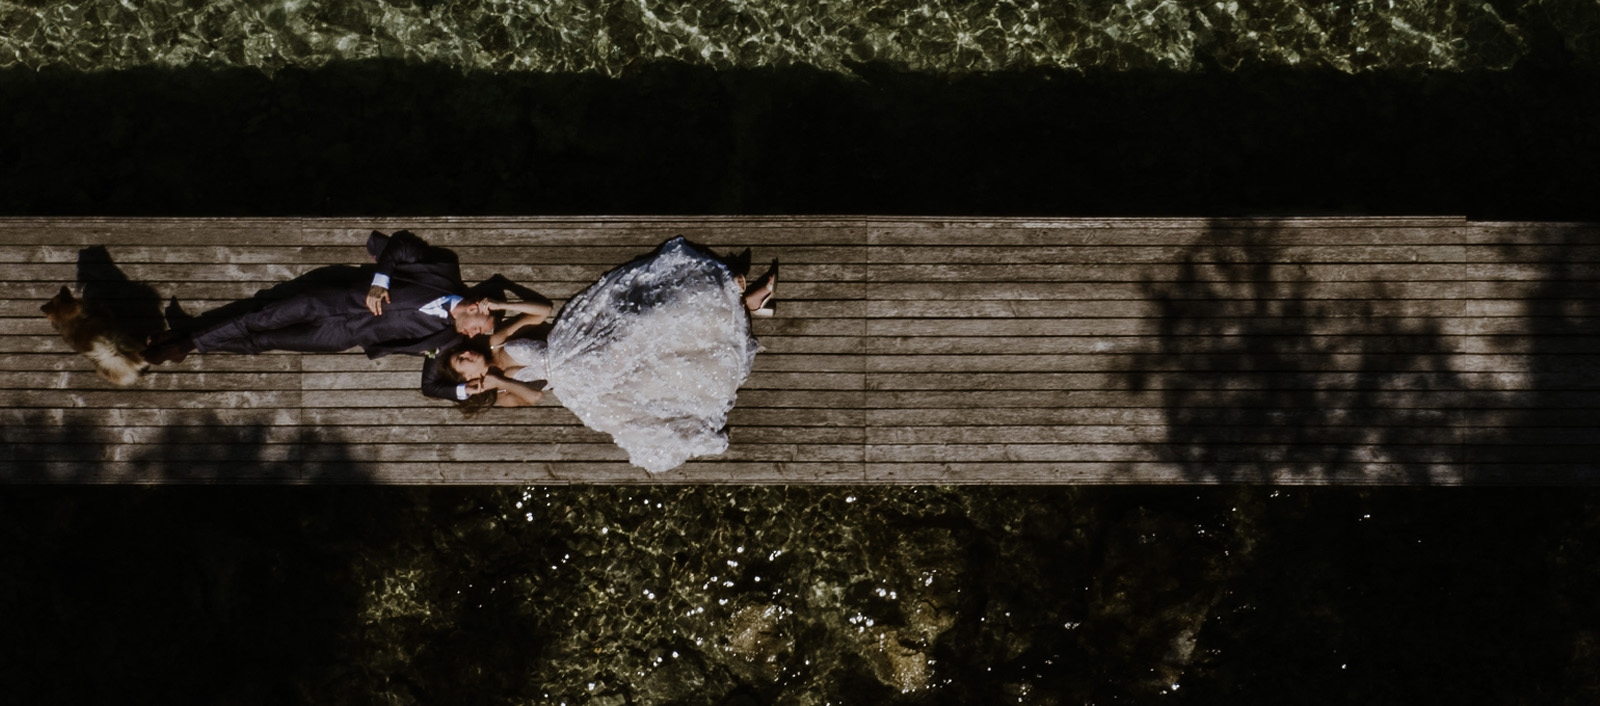 The richness of the scenery for us wedding photographers and videographers